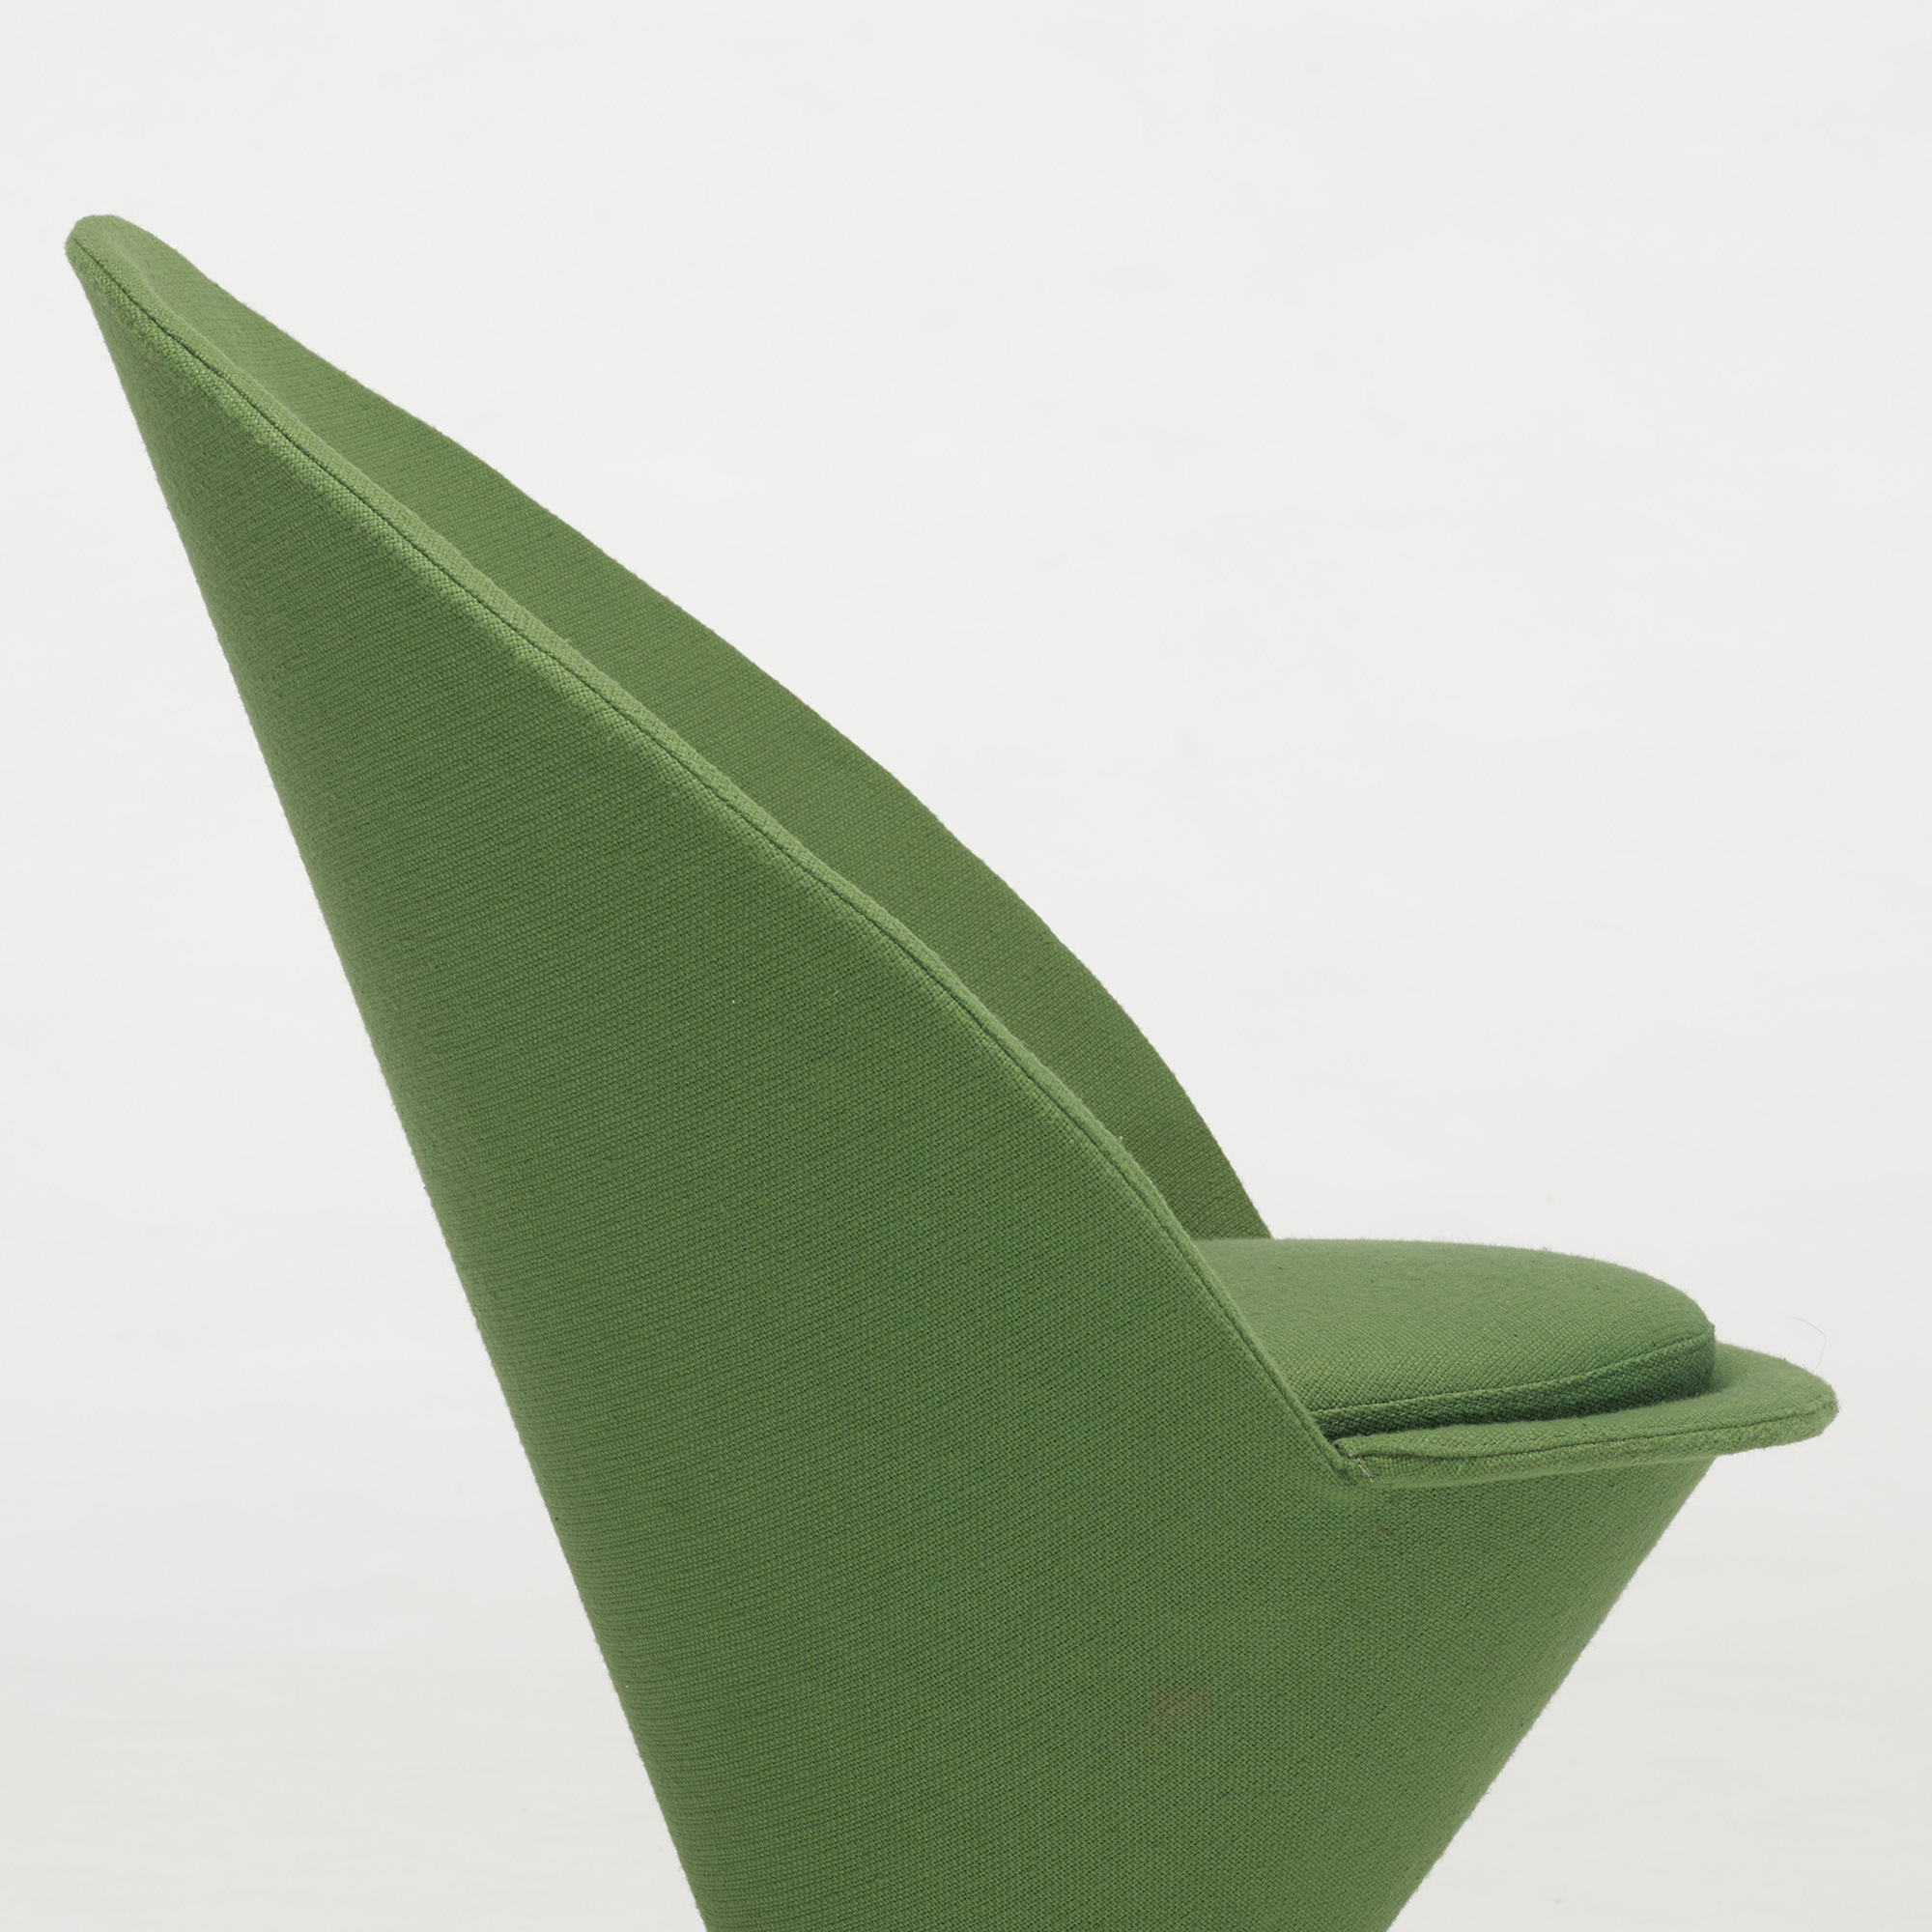 649: Verner Panton / Cone chair (4 of 4)